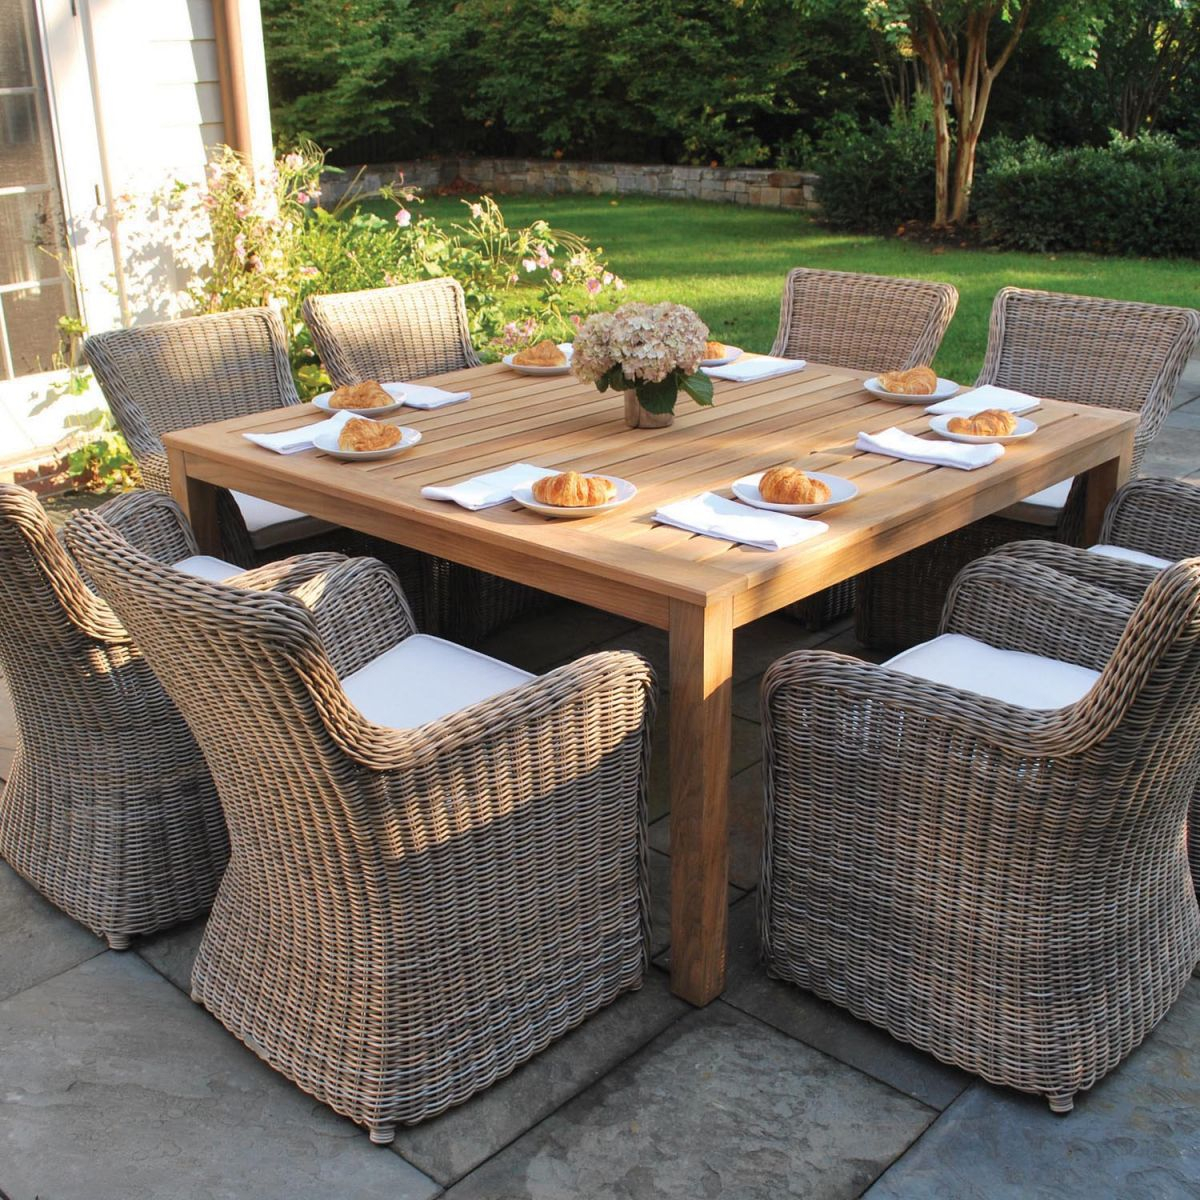 Modern Outdoor Teak Furniture Cool Teak Outdoor Patio Furniture within Teak Outdoor Furniture Set